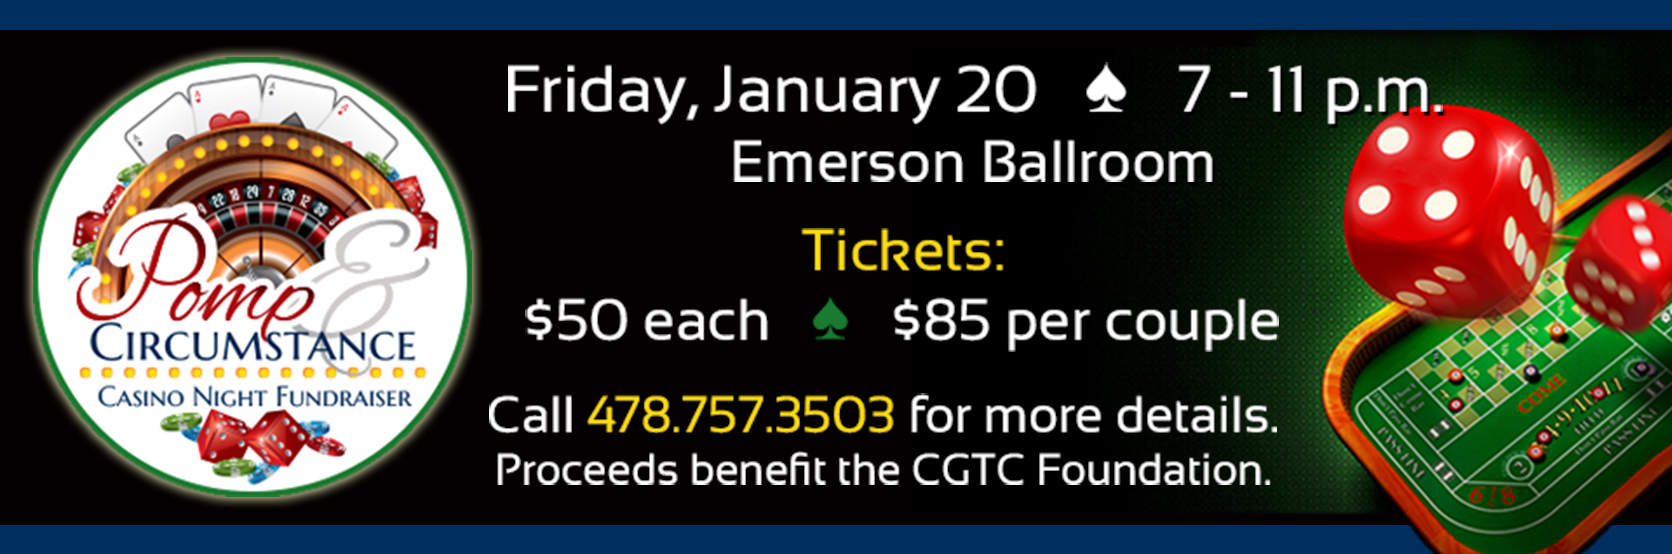 Tickets are on sale for the CGTC Foundation's Annual Casino Night Fundraiser. Tickets are $50 each or $85 per couple. Call 478-757-3503 for more details.